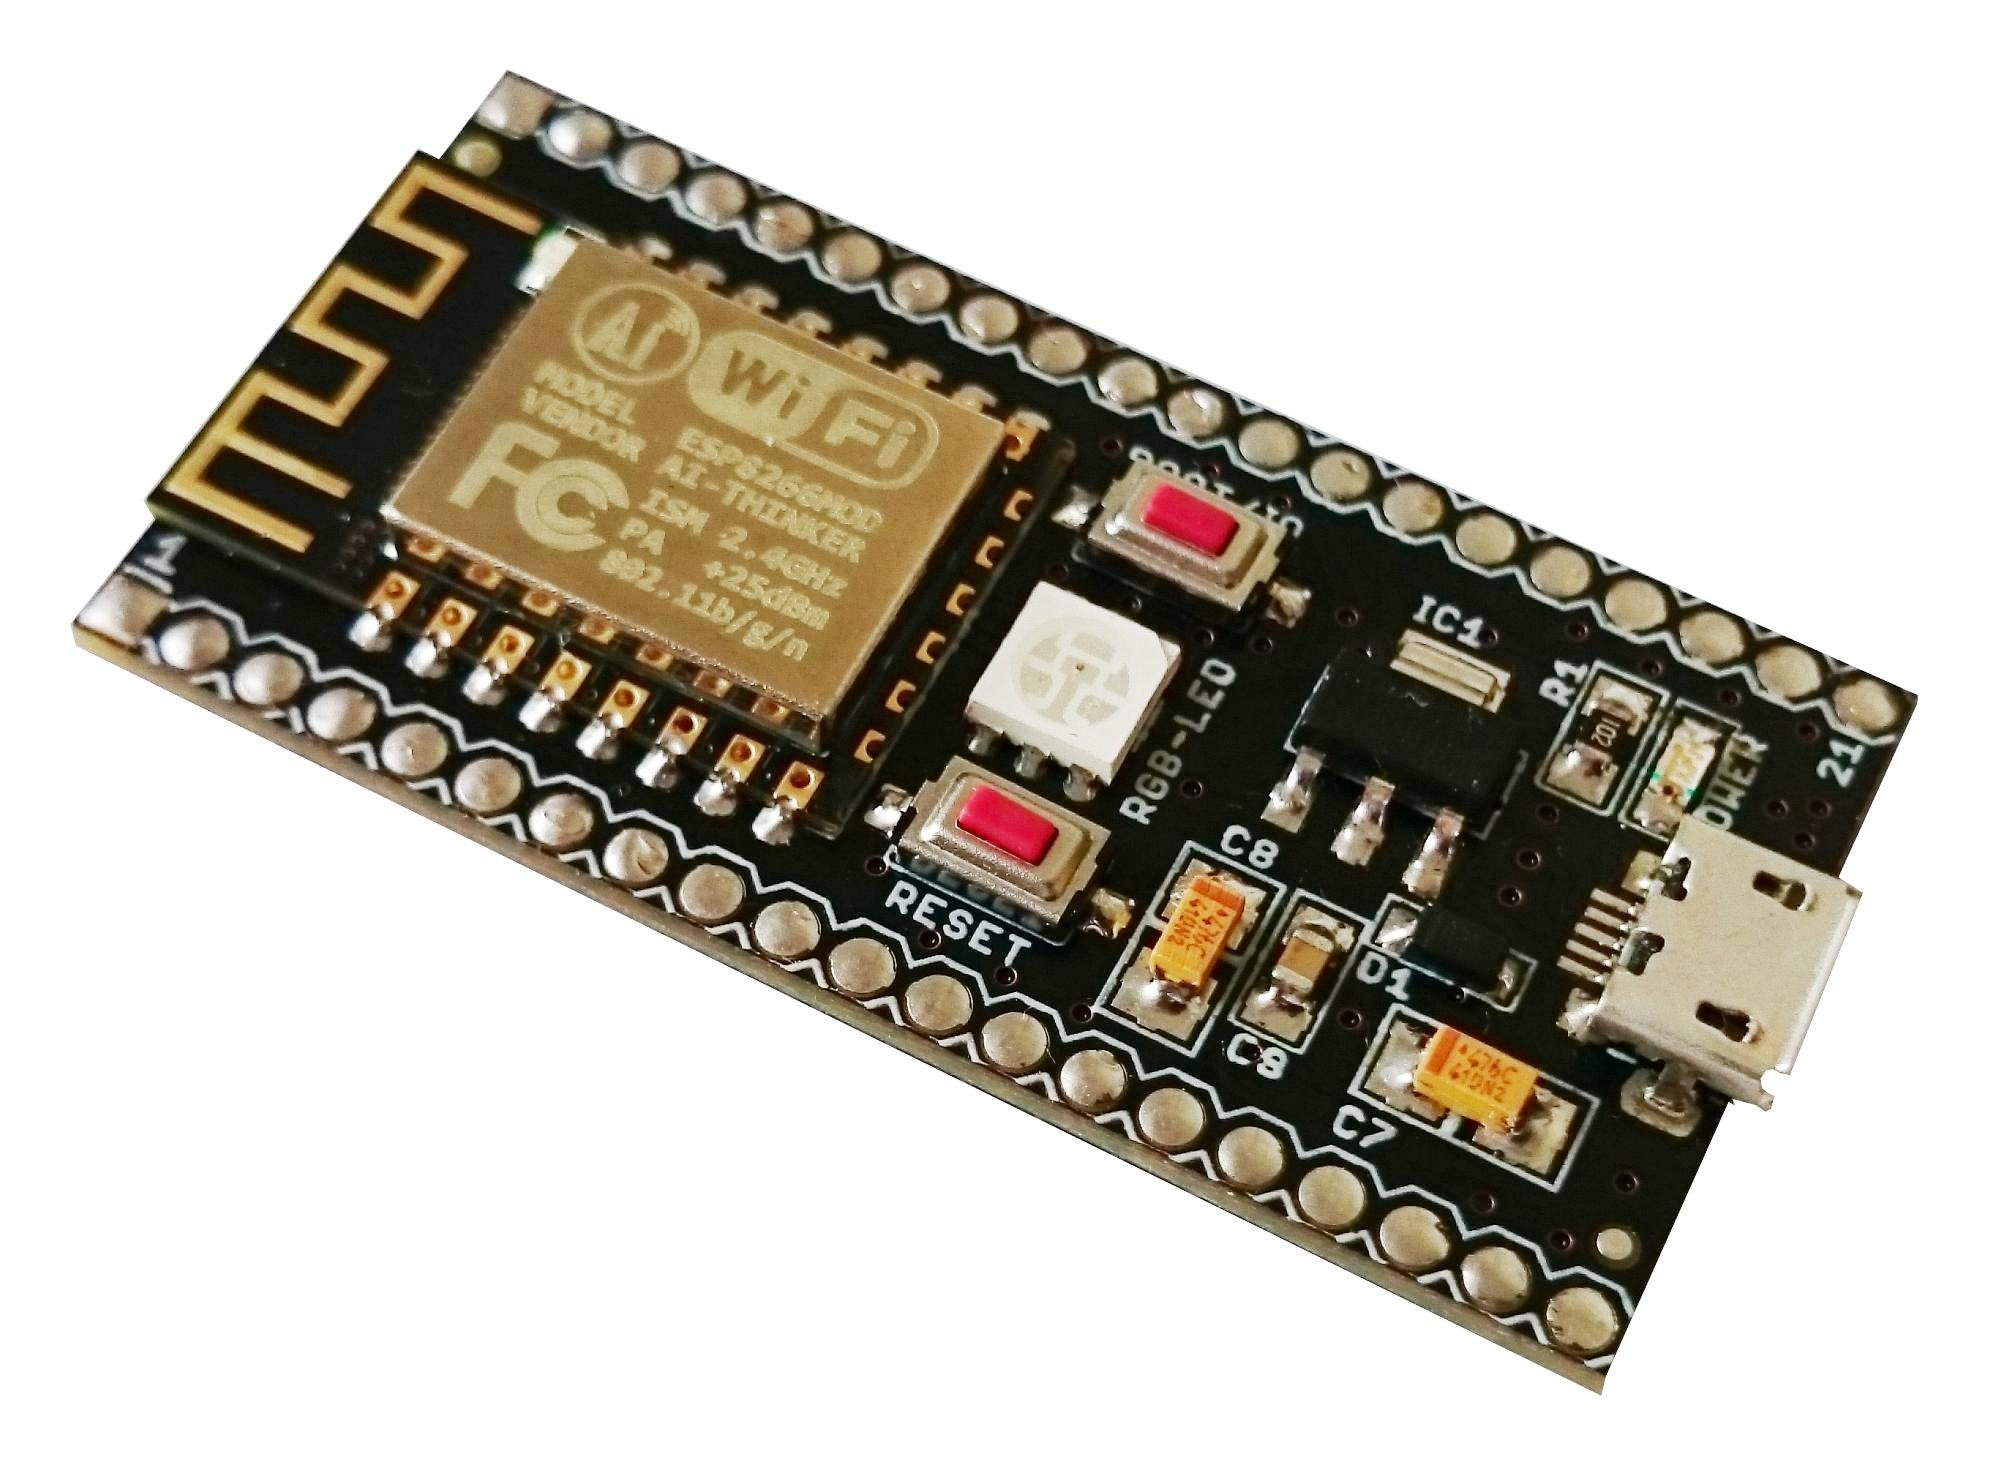 arduino board with Esp8266 Based Smartwifi Development Module on Tp4056 Micro Usb 5v 1a Lithium Battery Charger With Protection P 176 in addition Ebay Development Programmer Board For Attiny together with Research And Development together with Esp8266 Based Smartwifi Development Module likewise Sending Serial Data From Processing To Arduino.